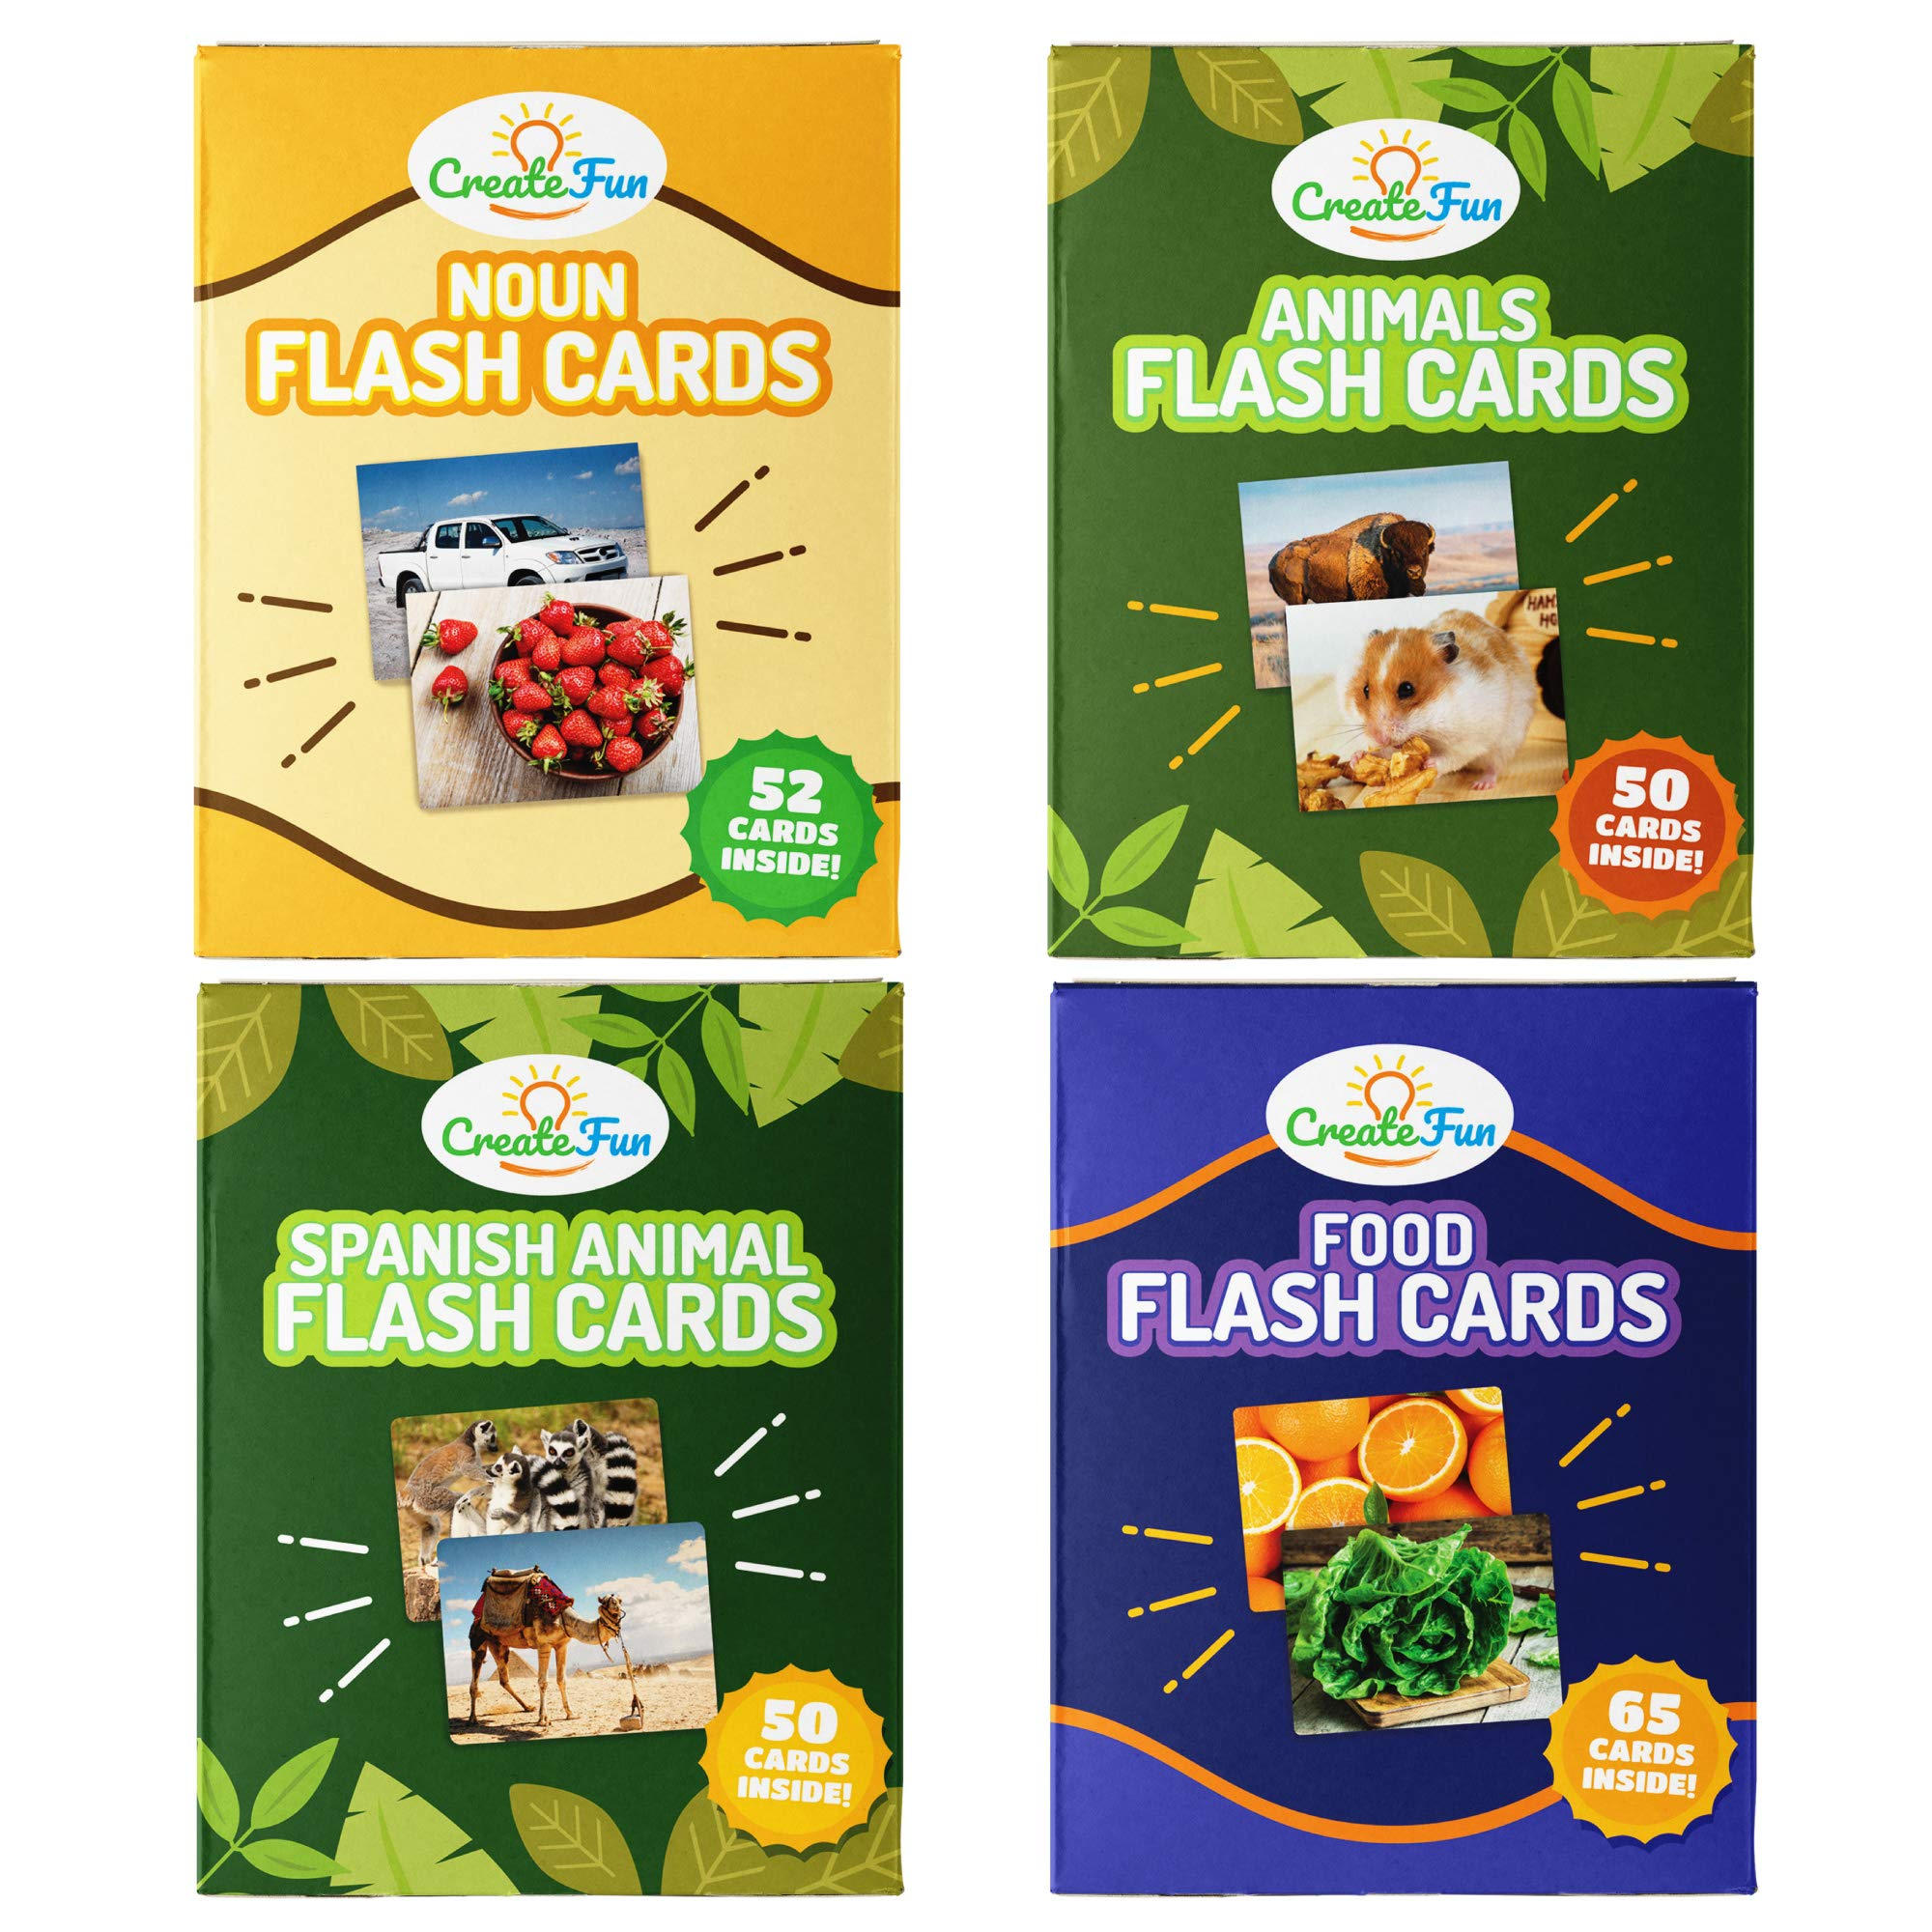 Noun Flash Cards Vocabulary Bundle | 200 Educational Language Builder First Word Photo Cards | with Learning Games for Toddlers, Preschool Teachers, Speech Therapy Materials and ESL Teaching Materials